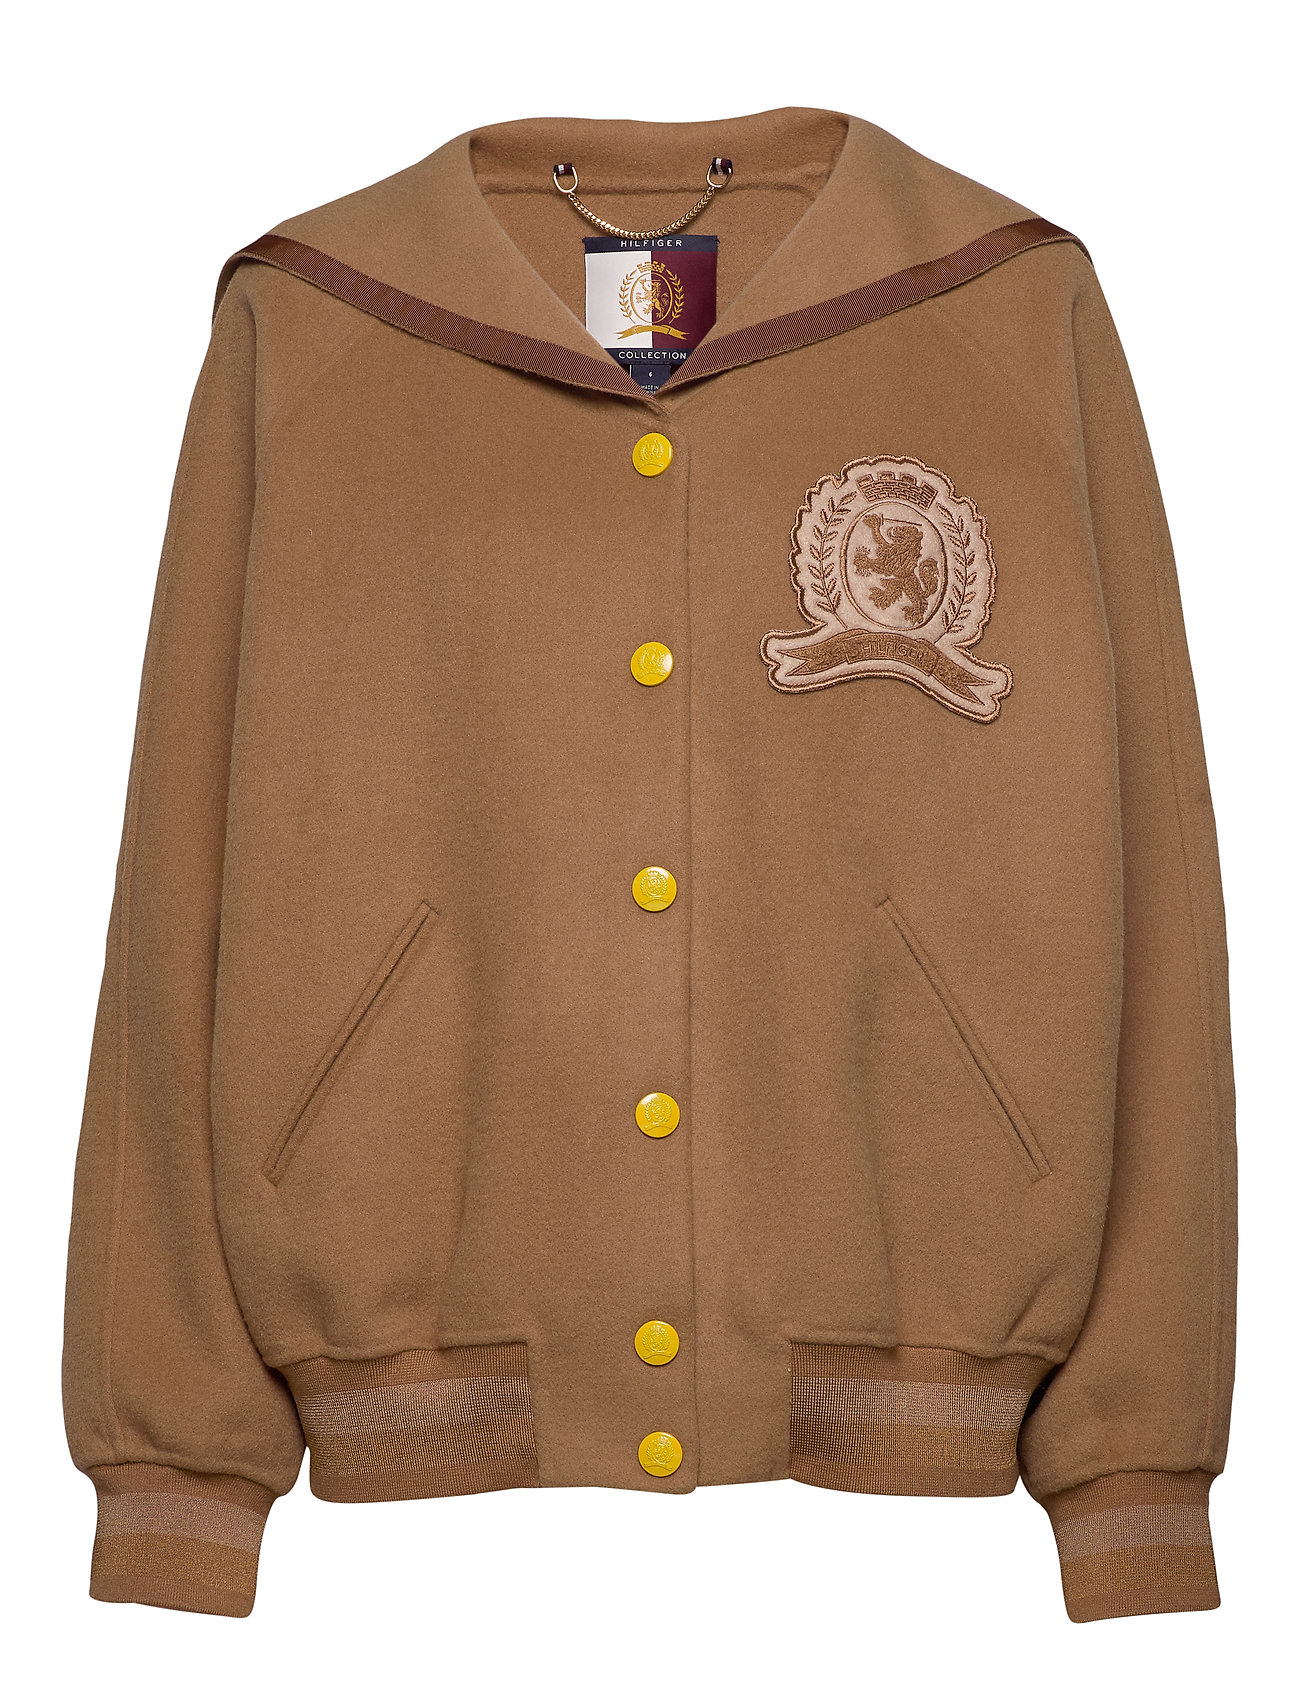 Hilfiger Collection HCW CREST VARSITY JA - CAMEL